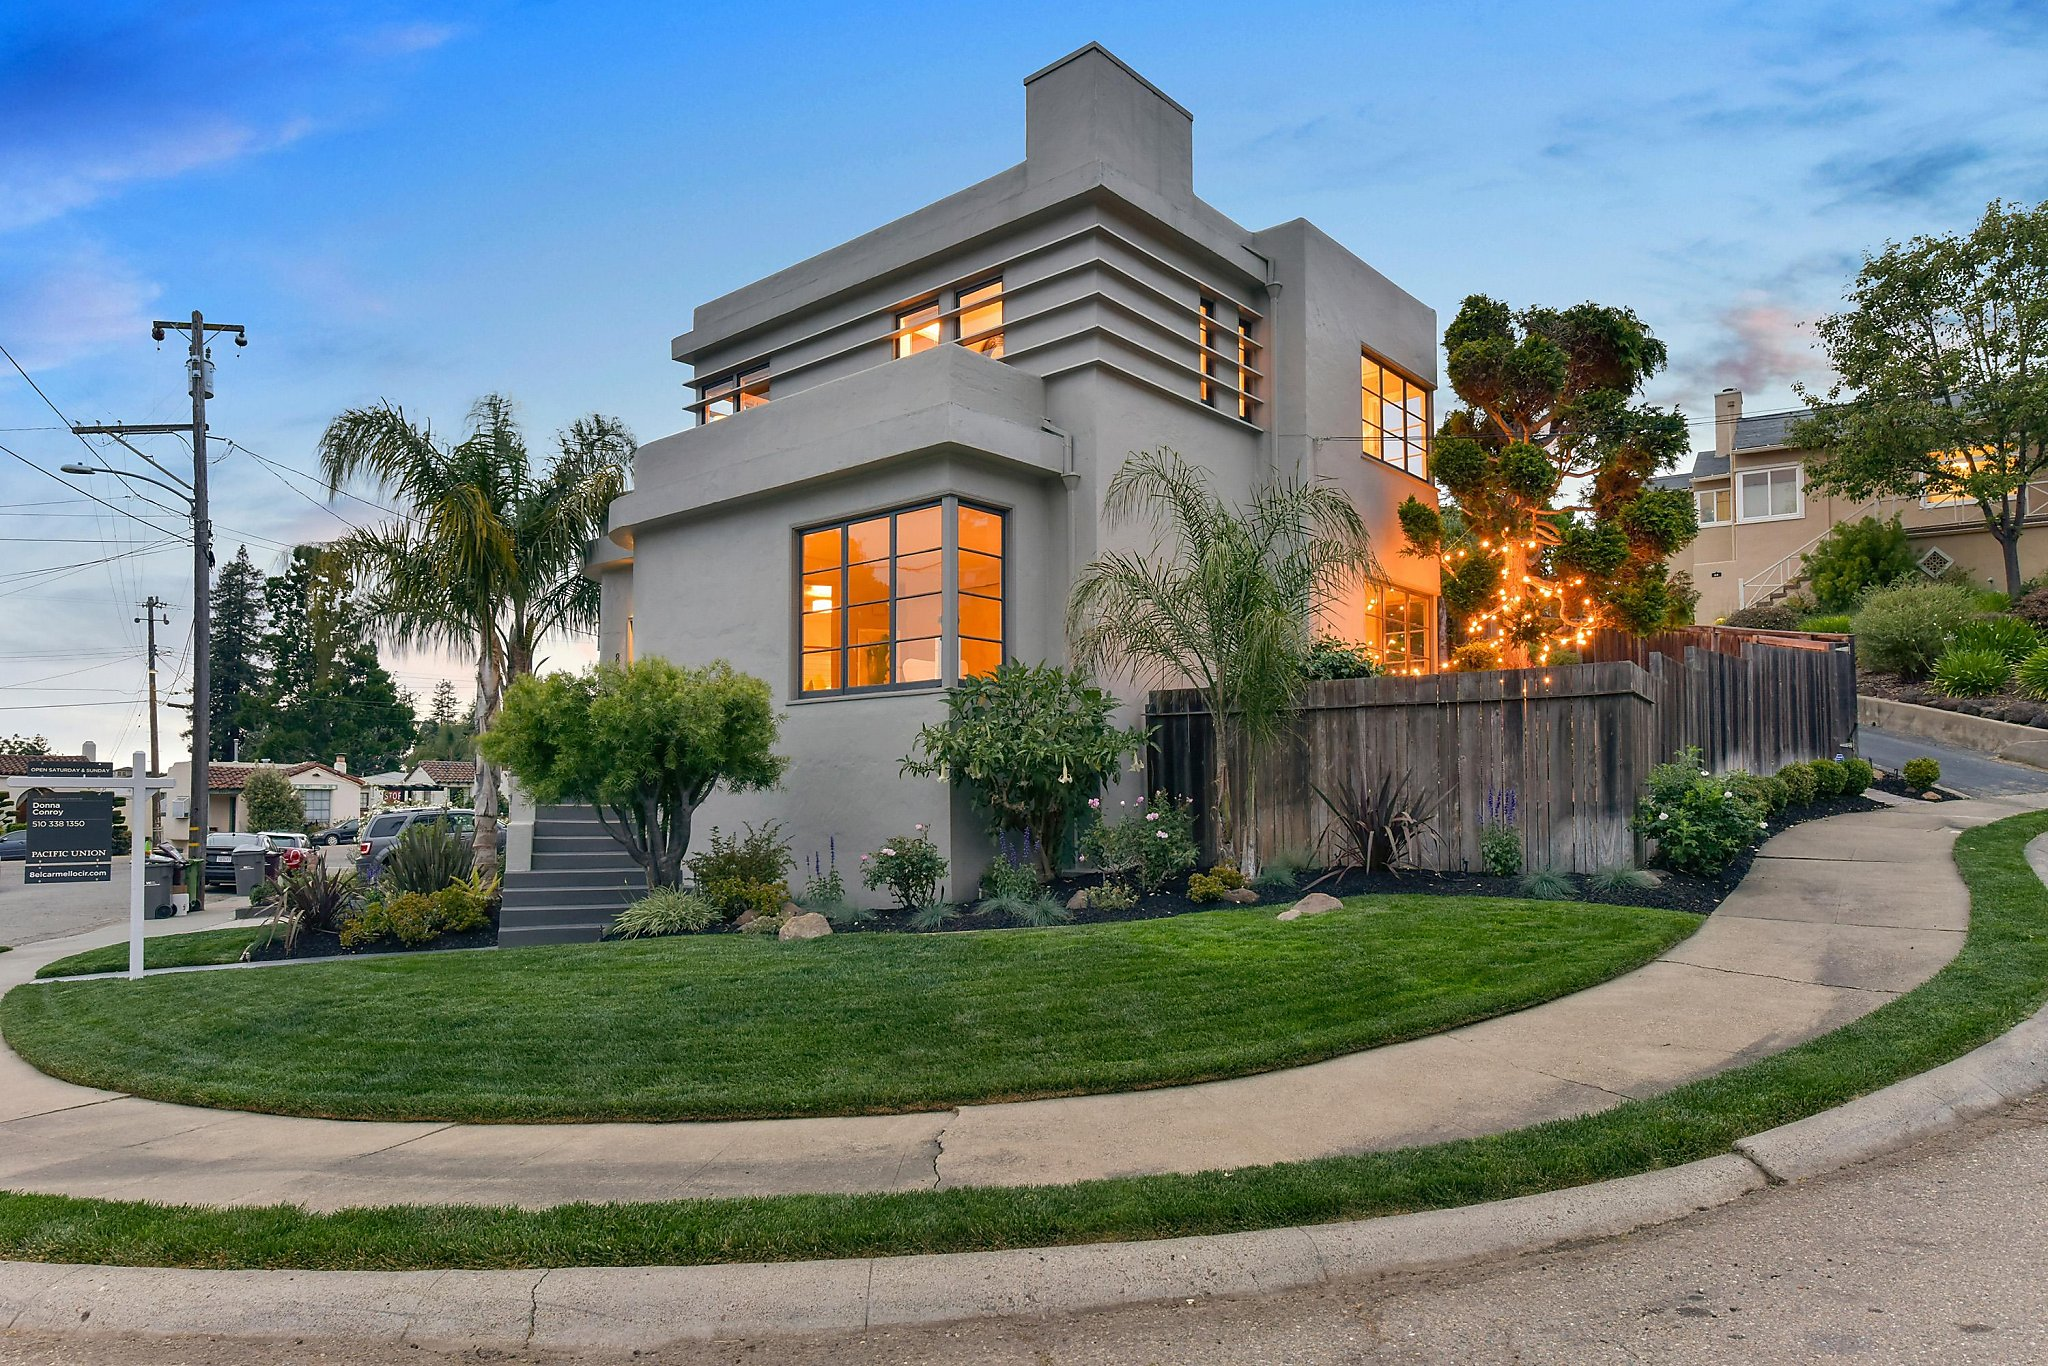 Art Deco Homes Art Deco Home Built In 1938 Open Sunday In Oakland Sfgate